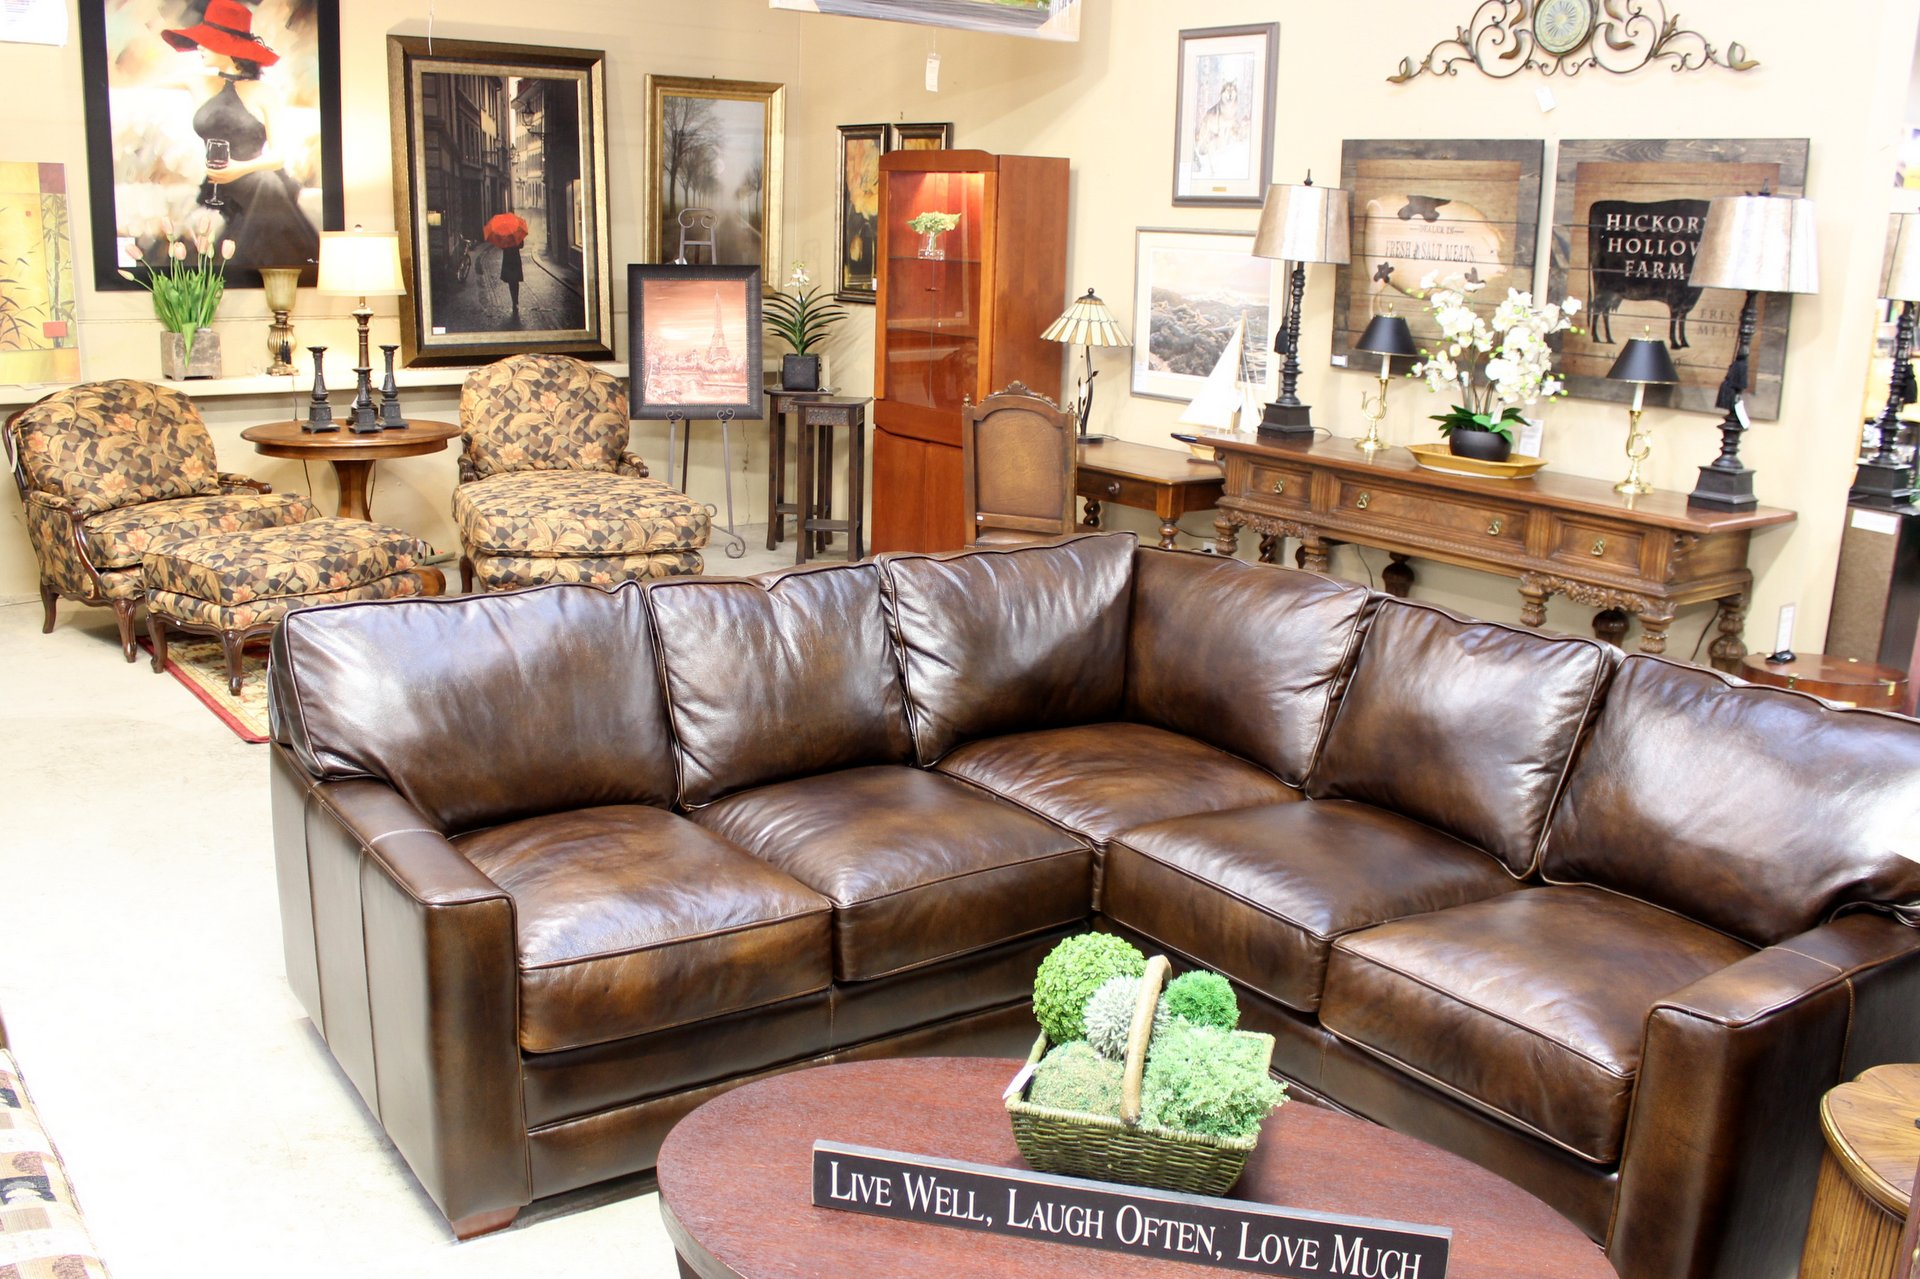 Second Hand Furniture Stores Near Me Amazing Upscale Consignment  Upscale Used Furniture & Decor Inspiration Design